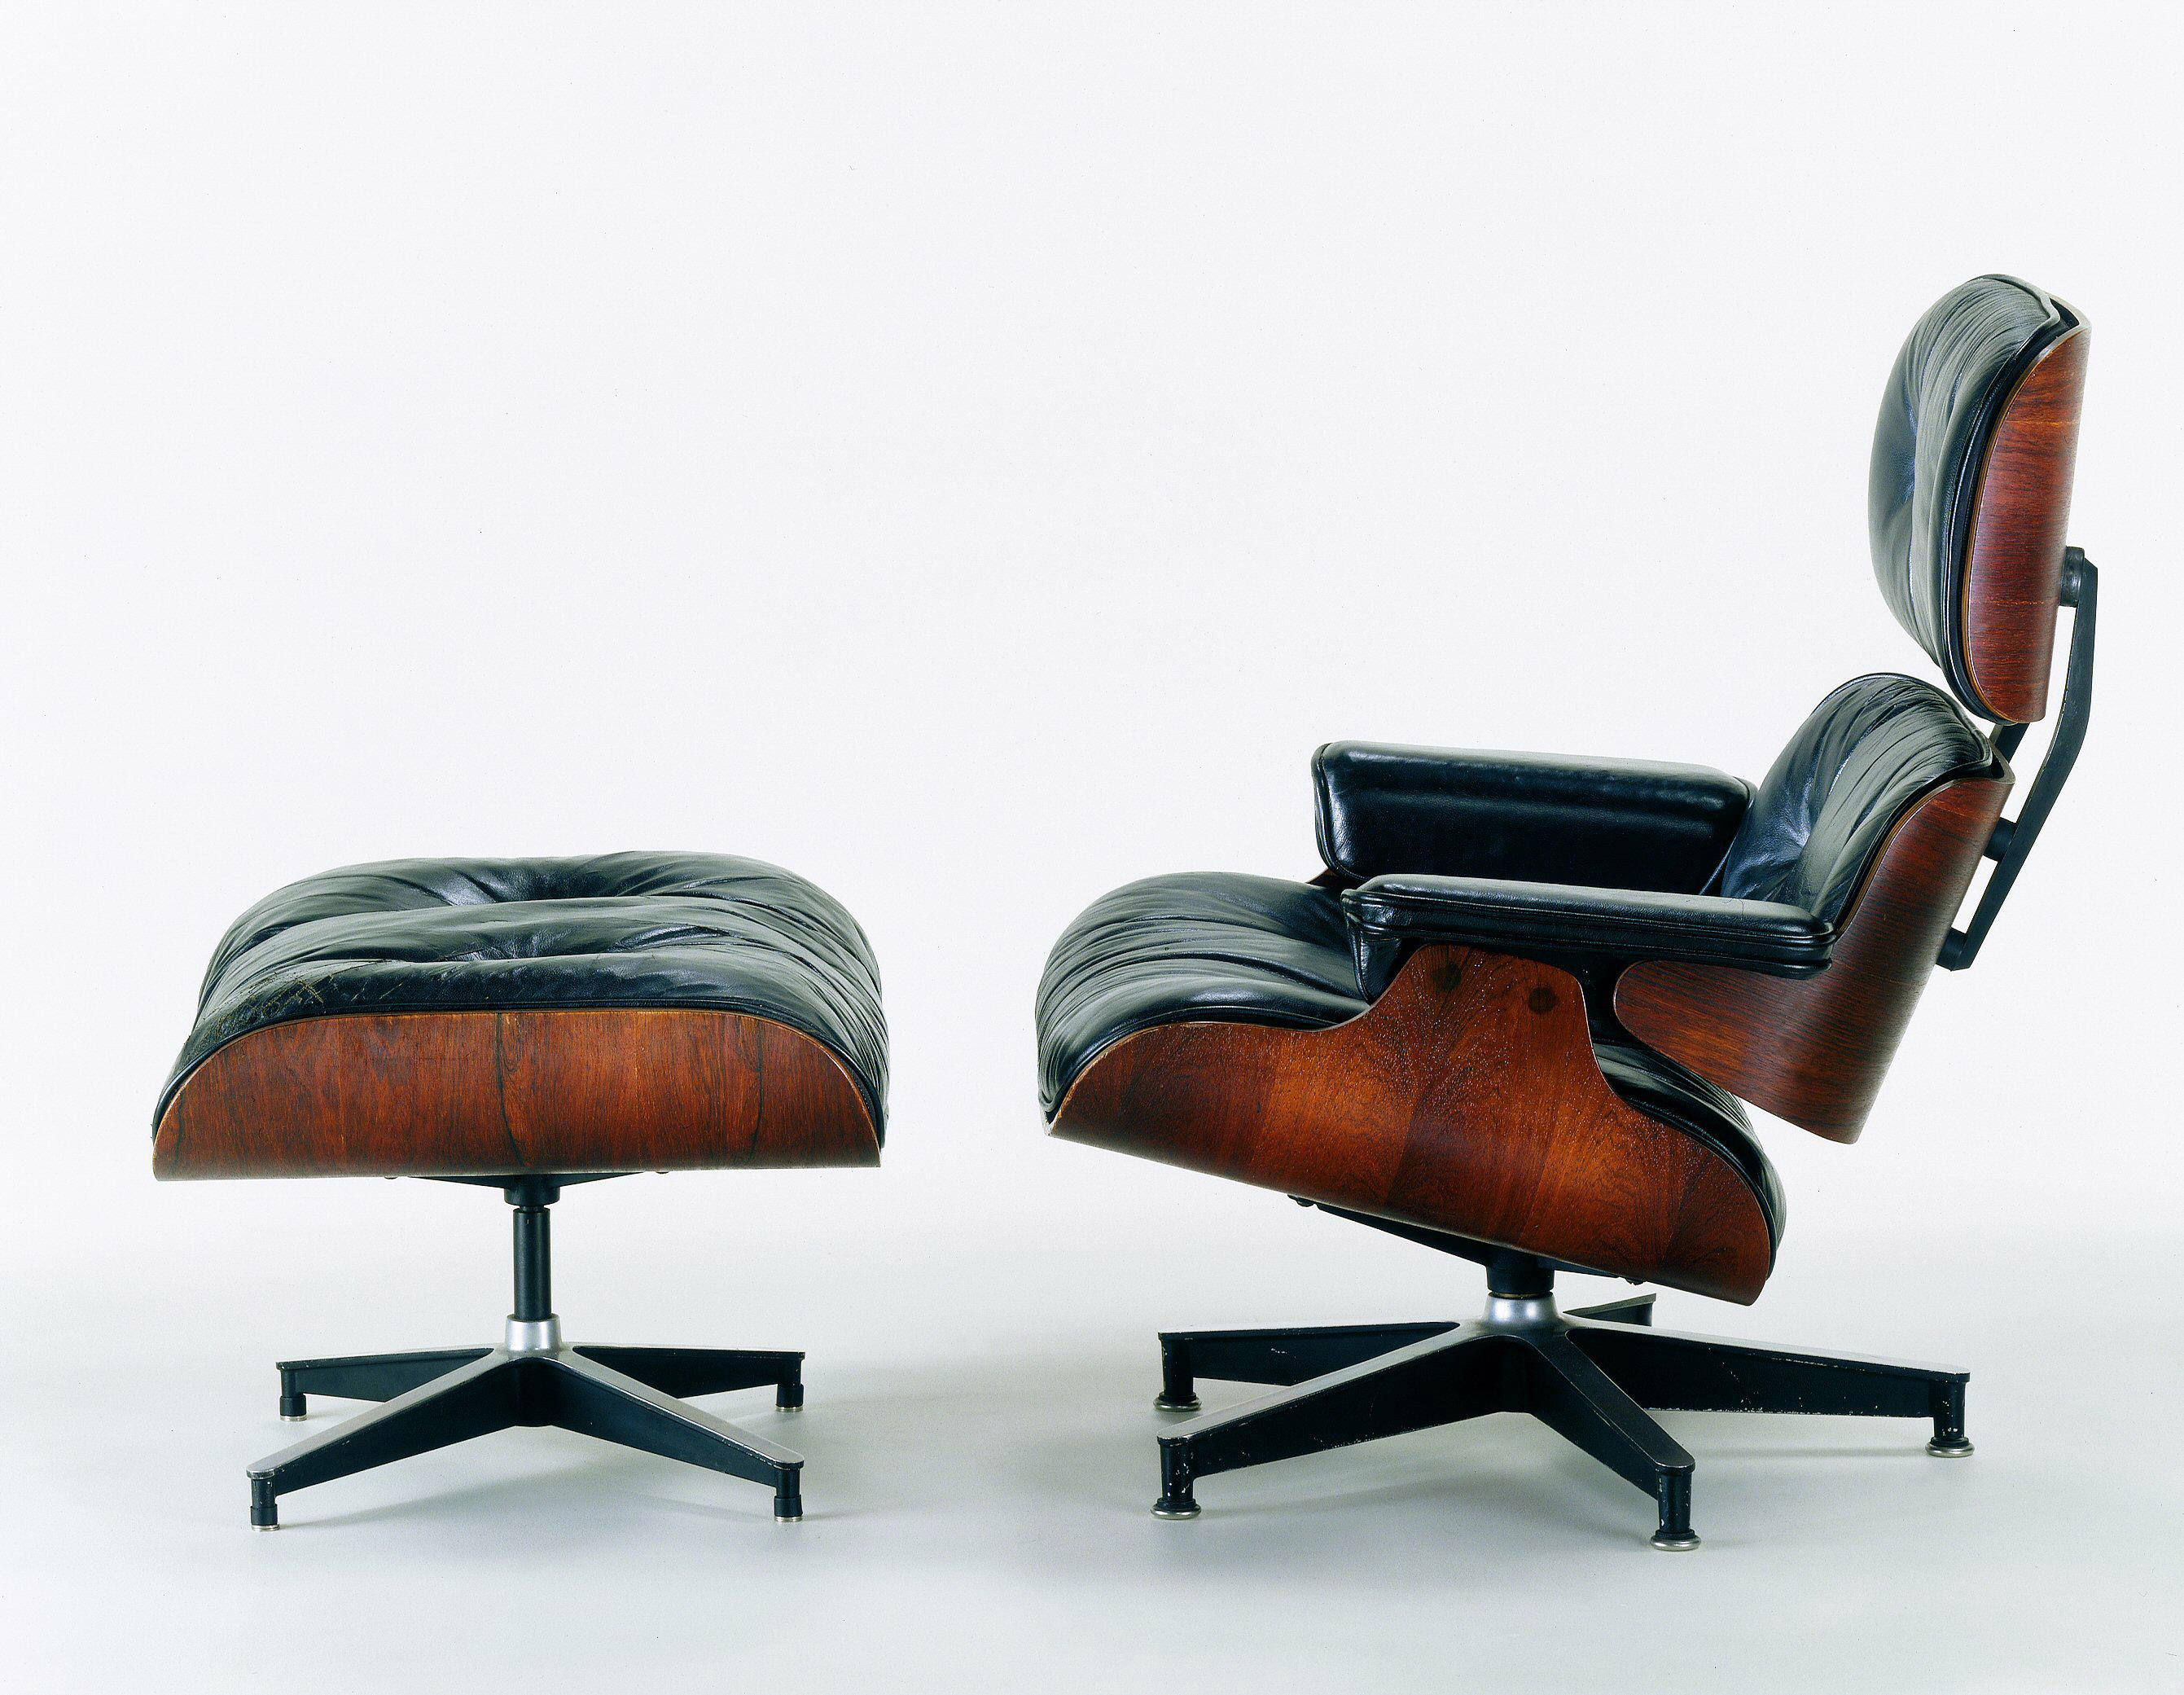 Astounding Eames Lounge Chair The Realm Alphanode Cool Chair Designs And Ideas Alphanodeonline